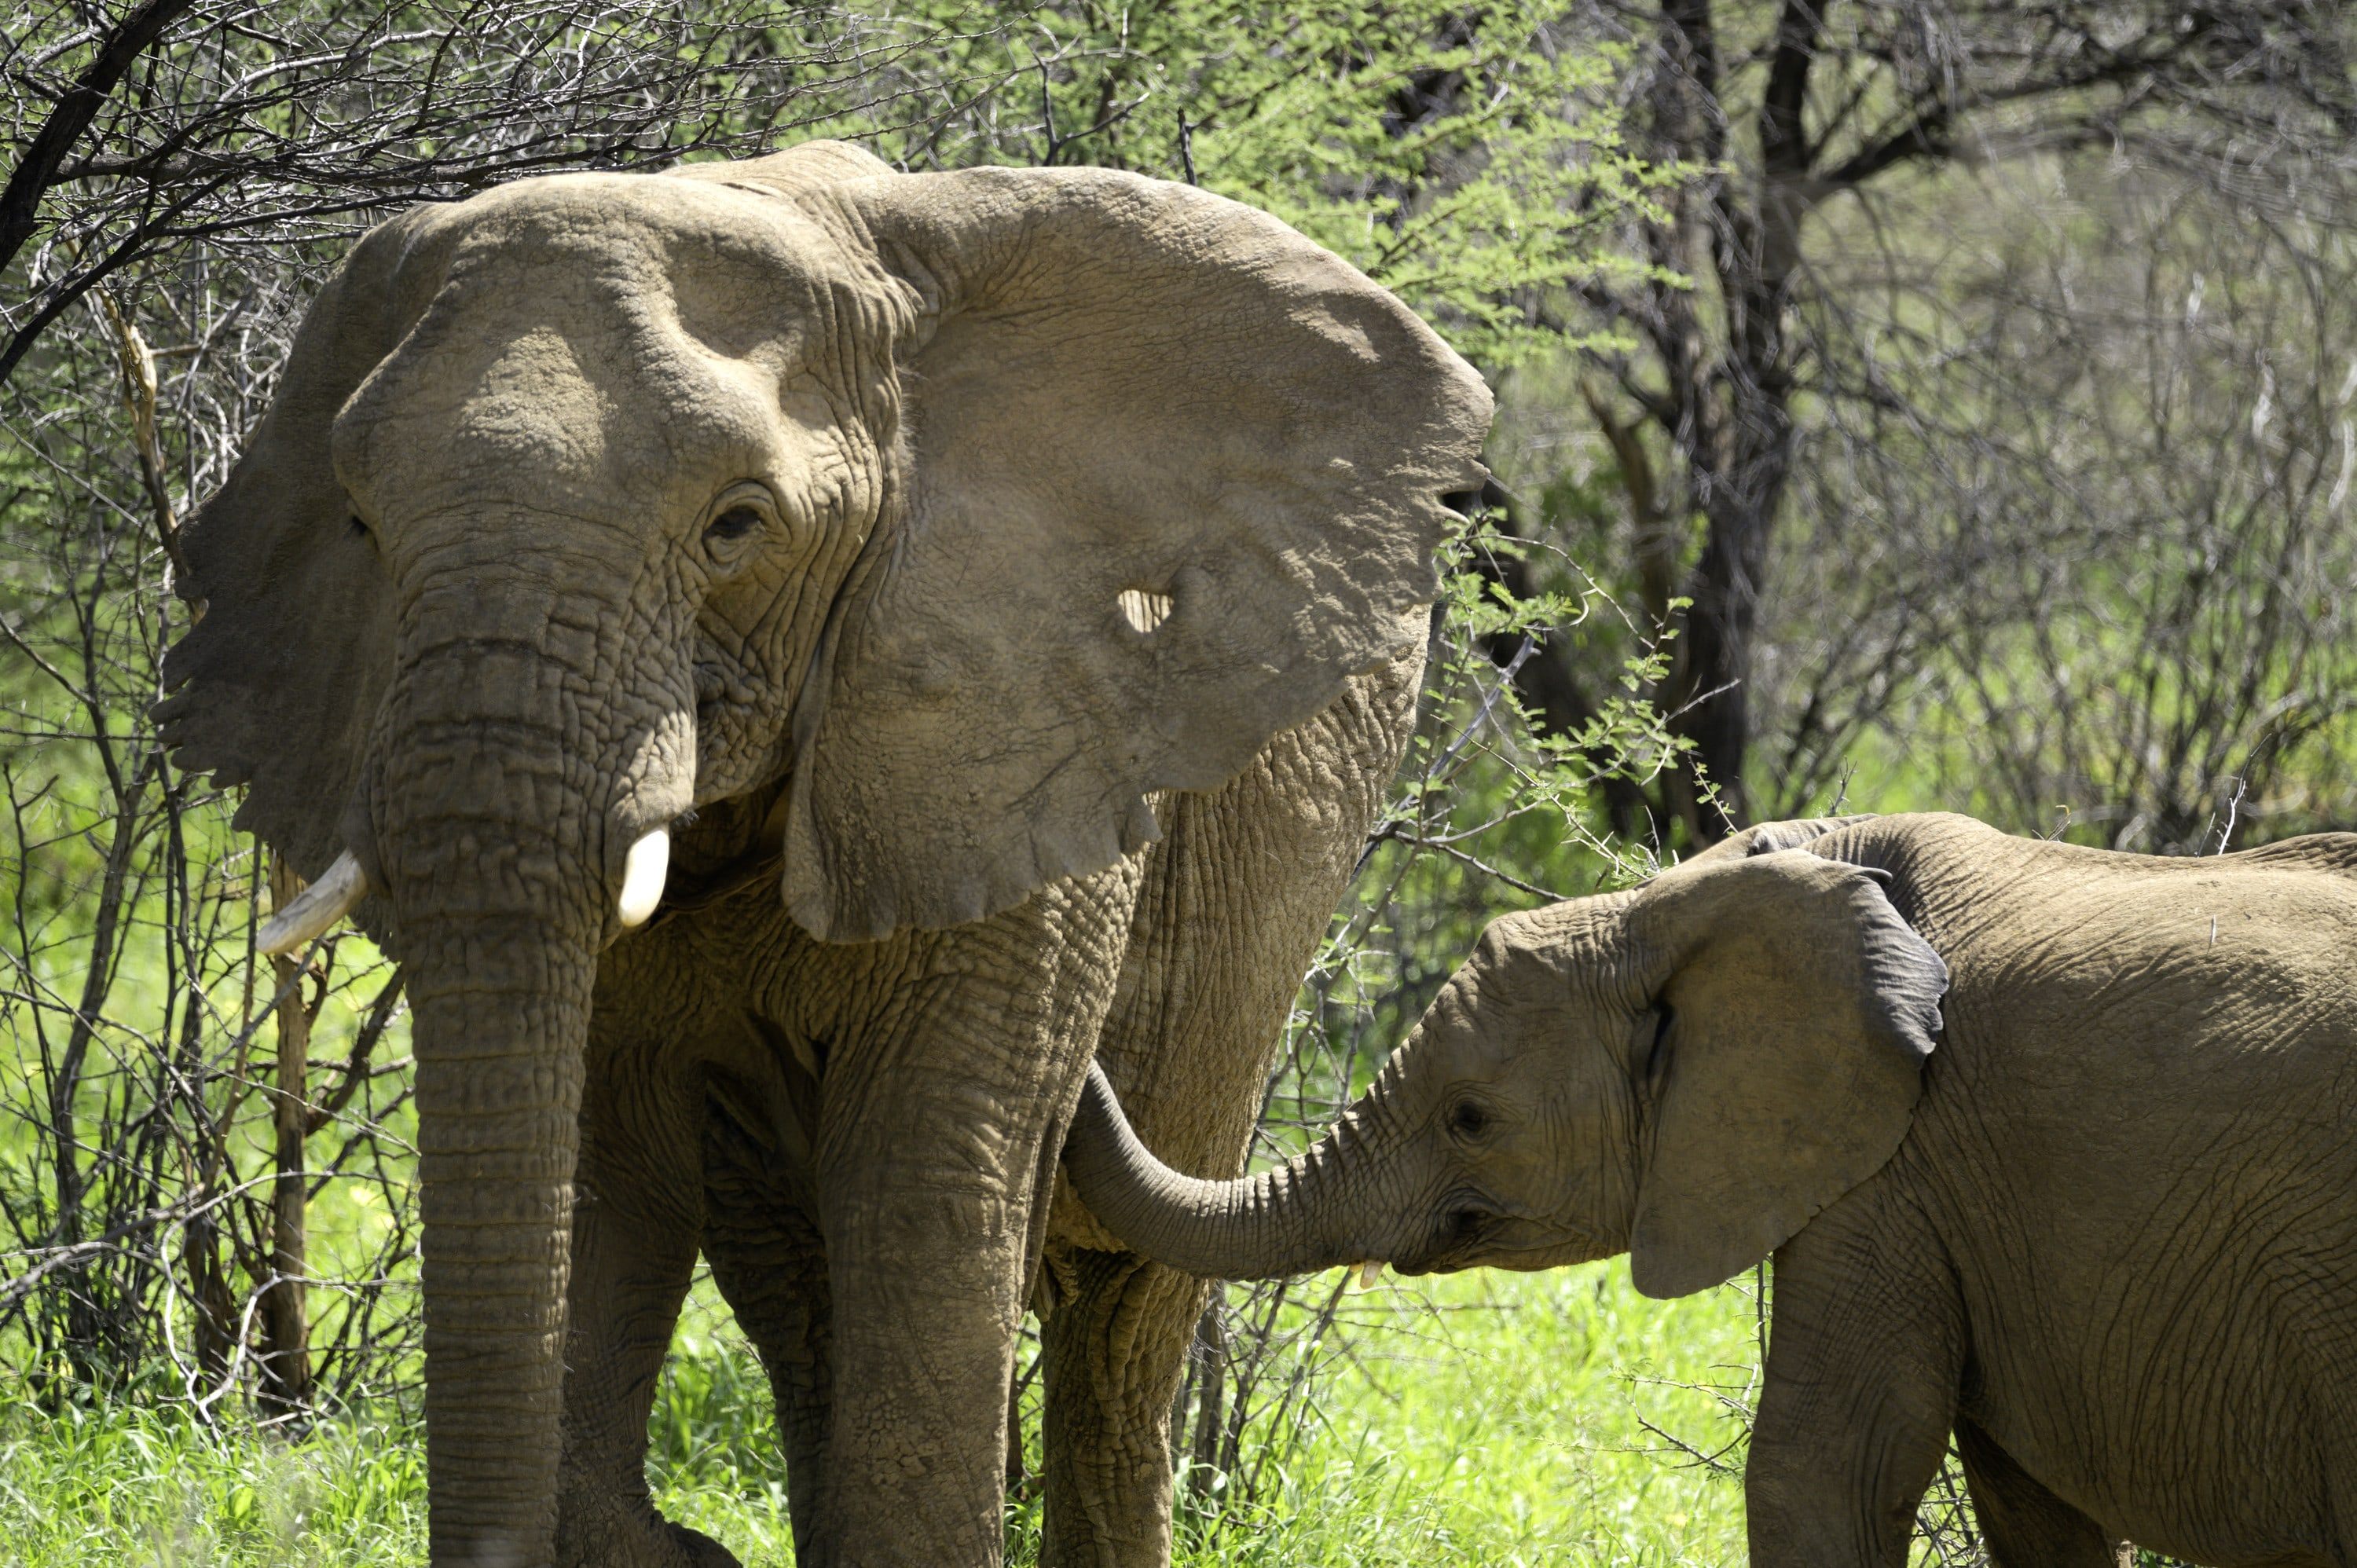 Max looping his trunk towards the Matriarch, Khanyisa. (National Geographic for Disney+/Melanie Gerry)